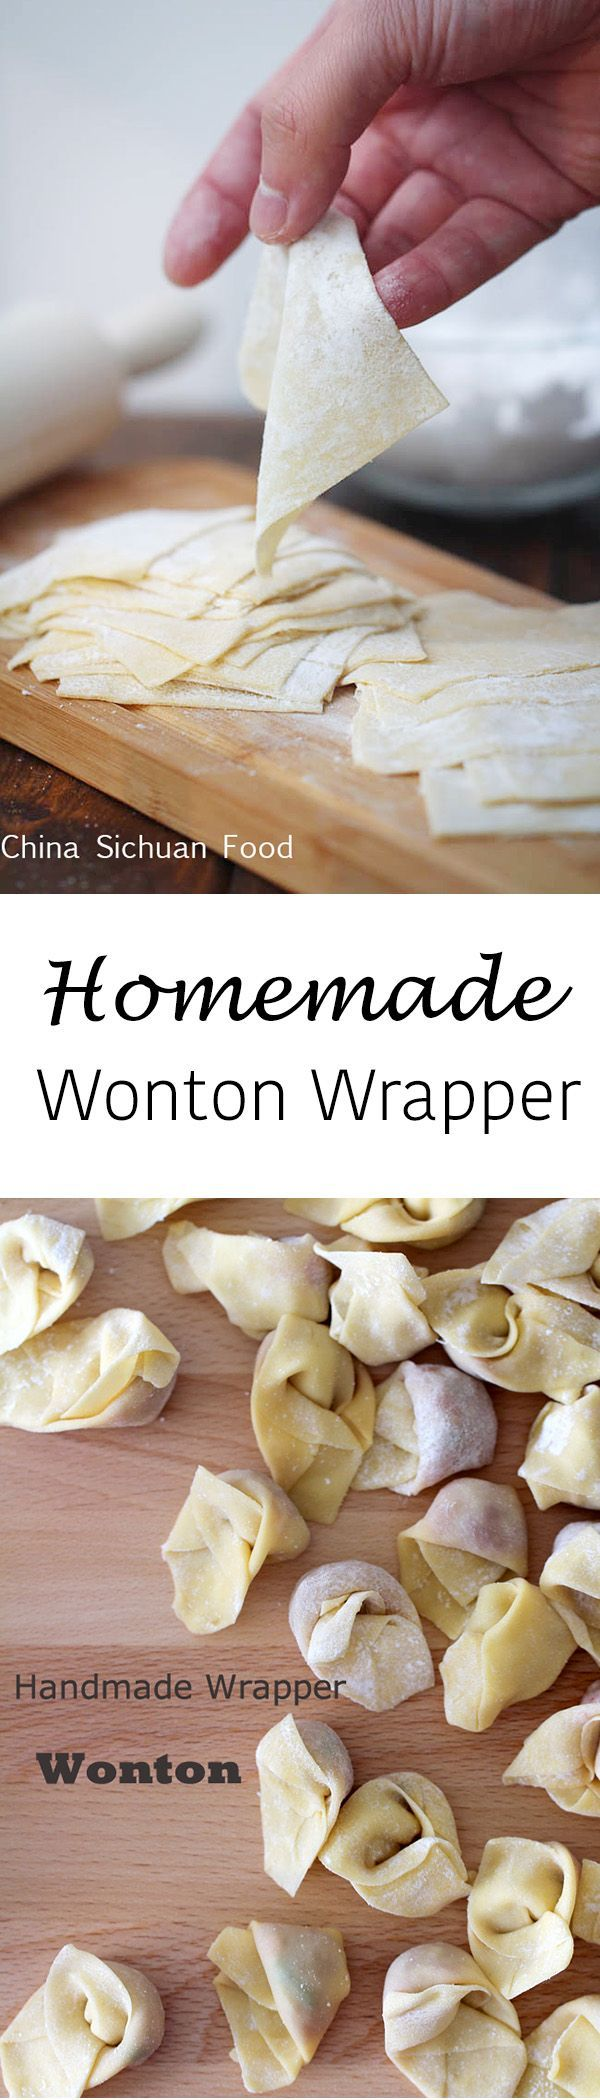 homemade #wonton wrappers skip egg and make this vegan